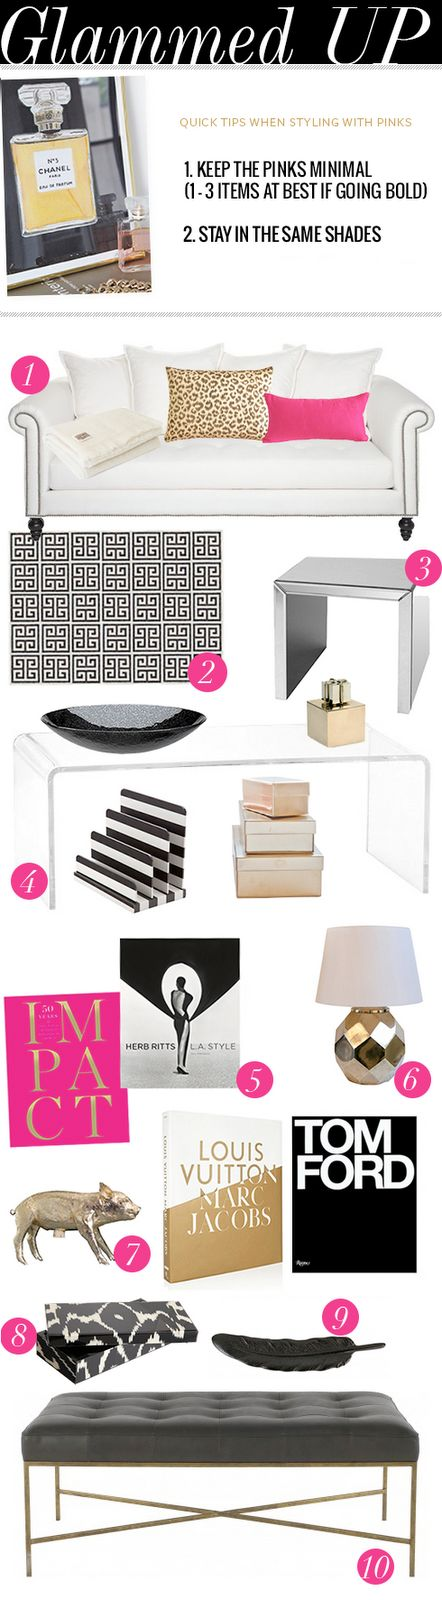 Just my style: glam, black white, gold, pink and leopard!! Yay!